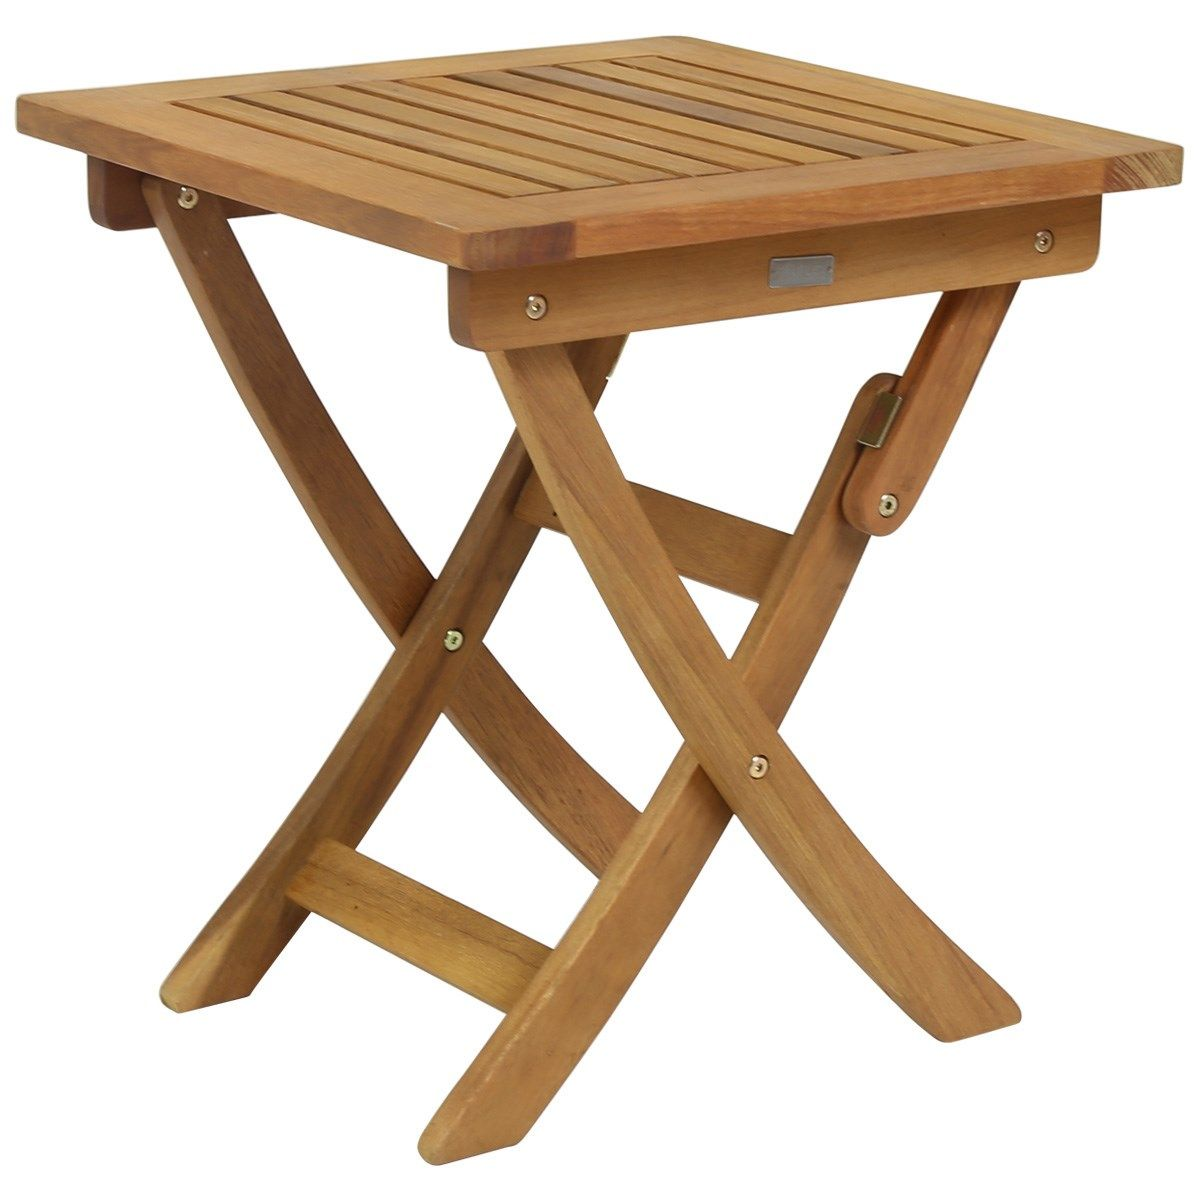 Small Garden Wooden Side Table Folding | Wooden Garden Furniture, Wooden Garden Table, Wooden Side Table